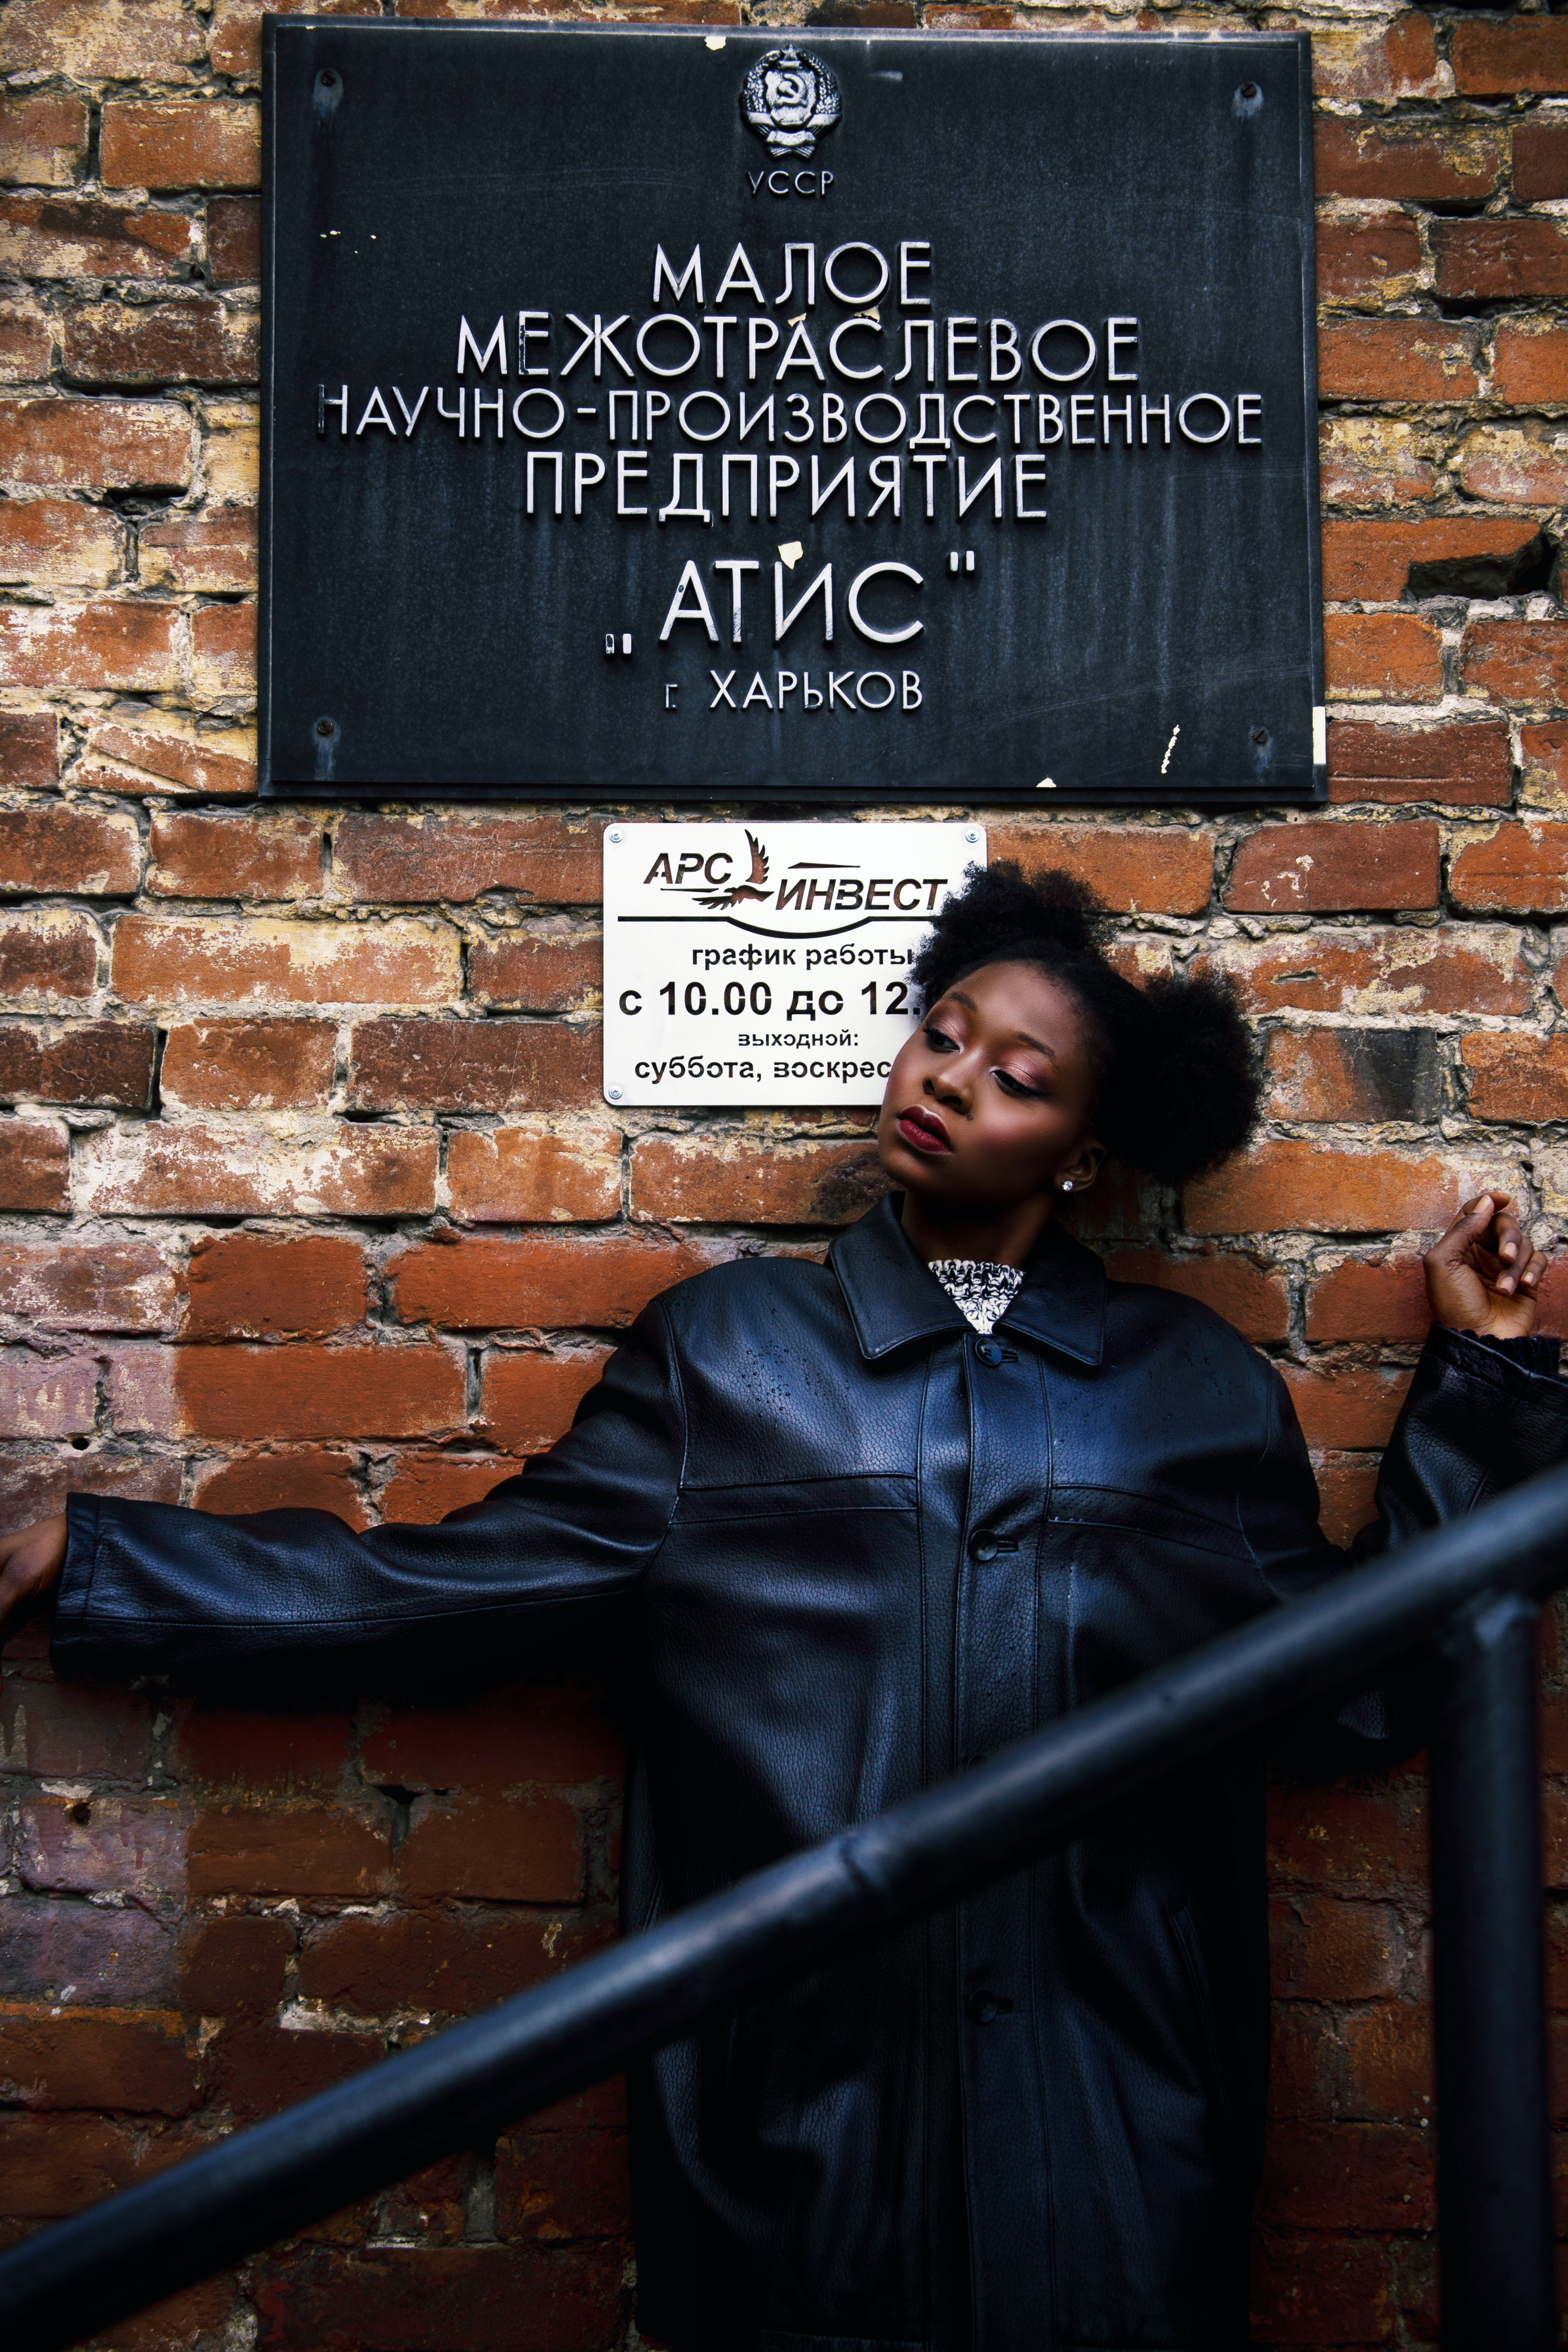 Woman in Black Leather Coat Leaning on Brick Wall